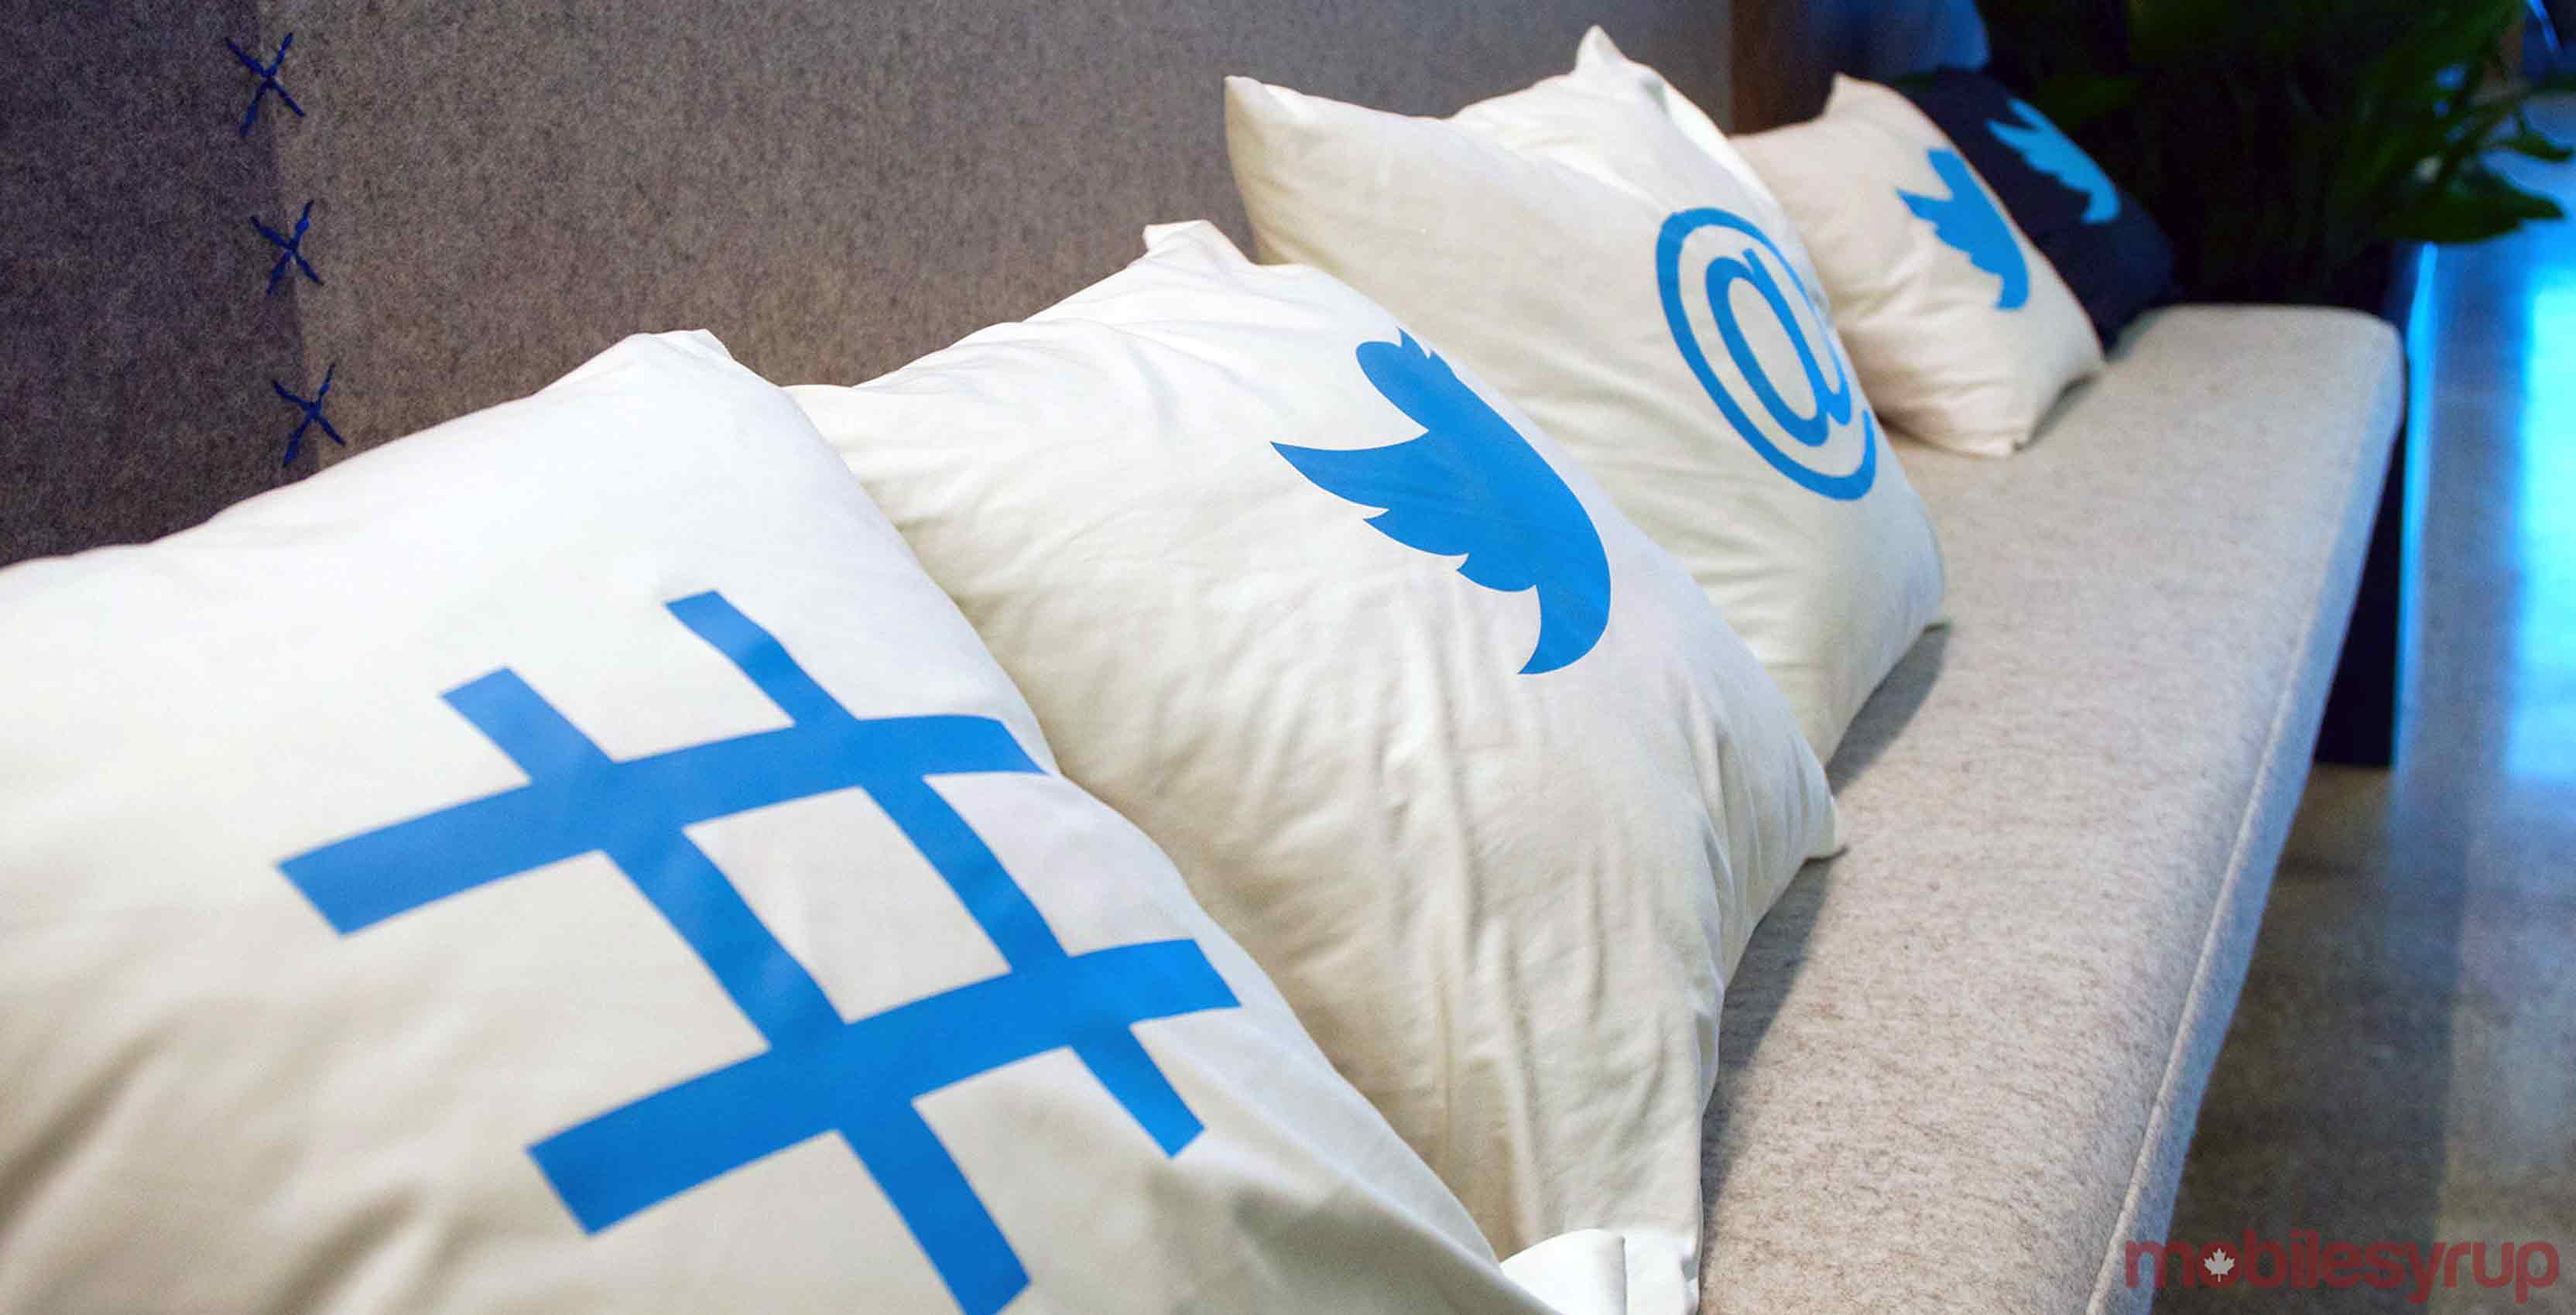 Twitter Pillows on couch